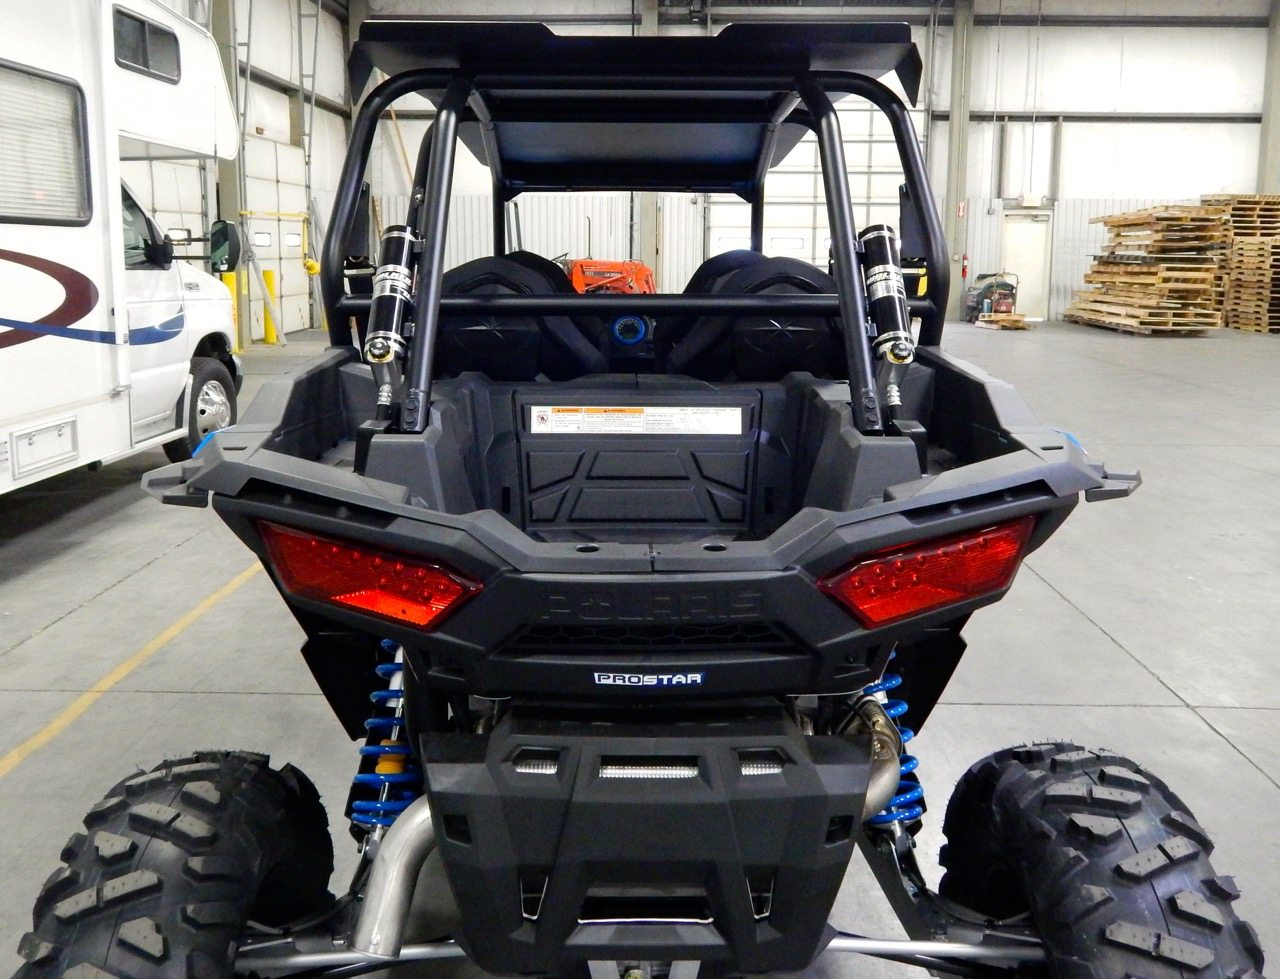 Axiom Roof 4 Seater Polaris Rzr Xp4 1000 Axiom Side By Side